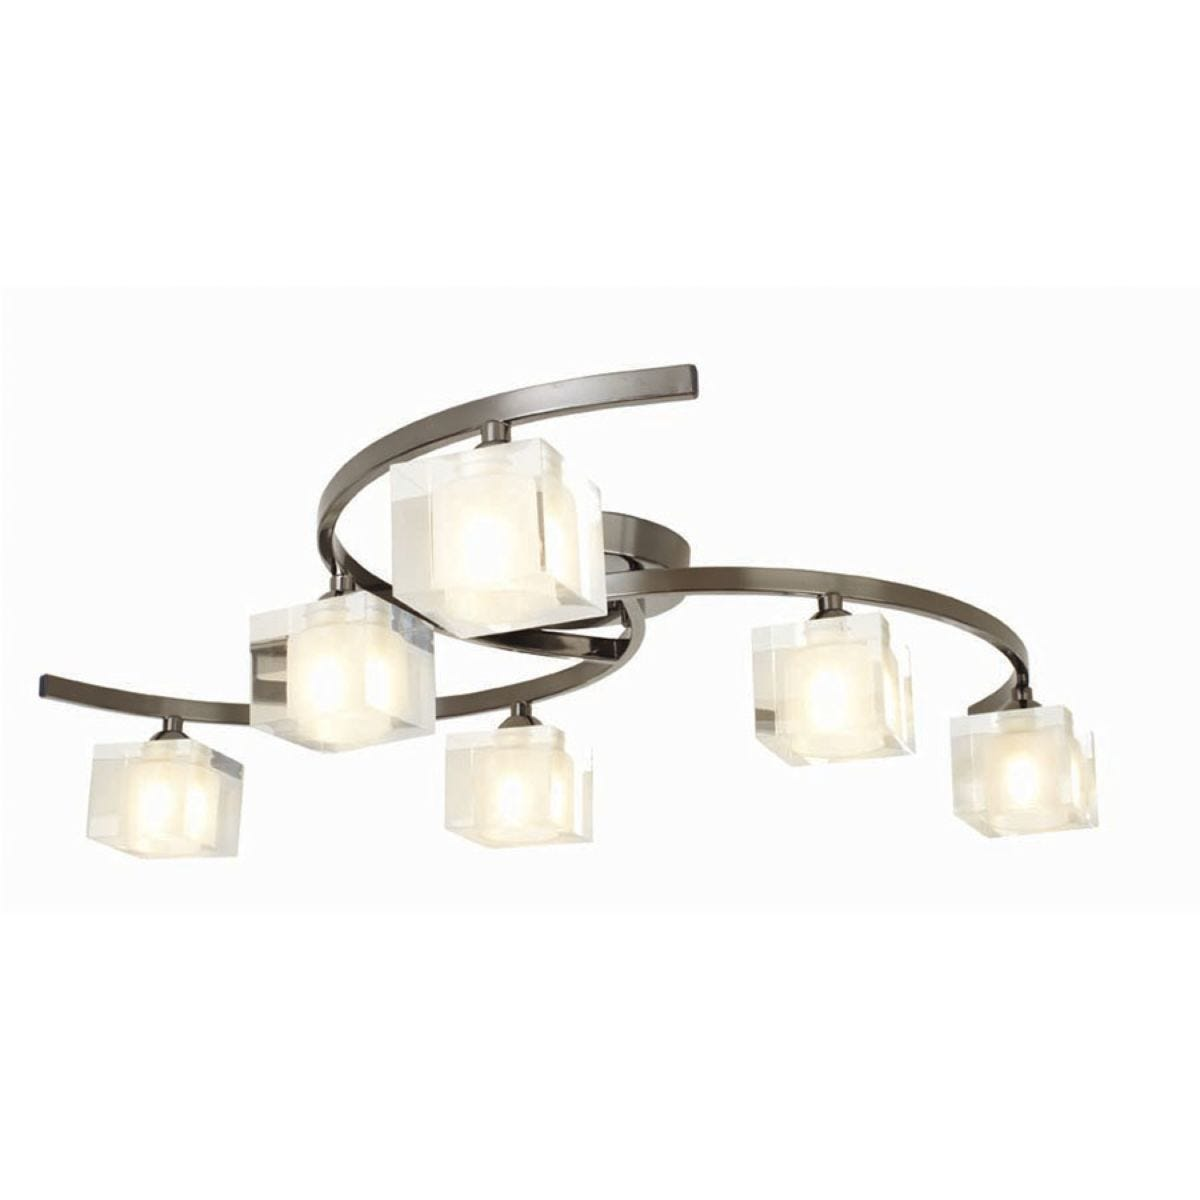 Village At Home Ice 6-Bulb Ceiling Light - Pewter